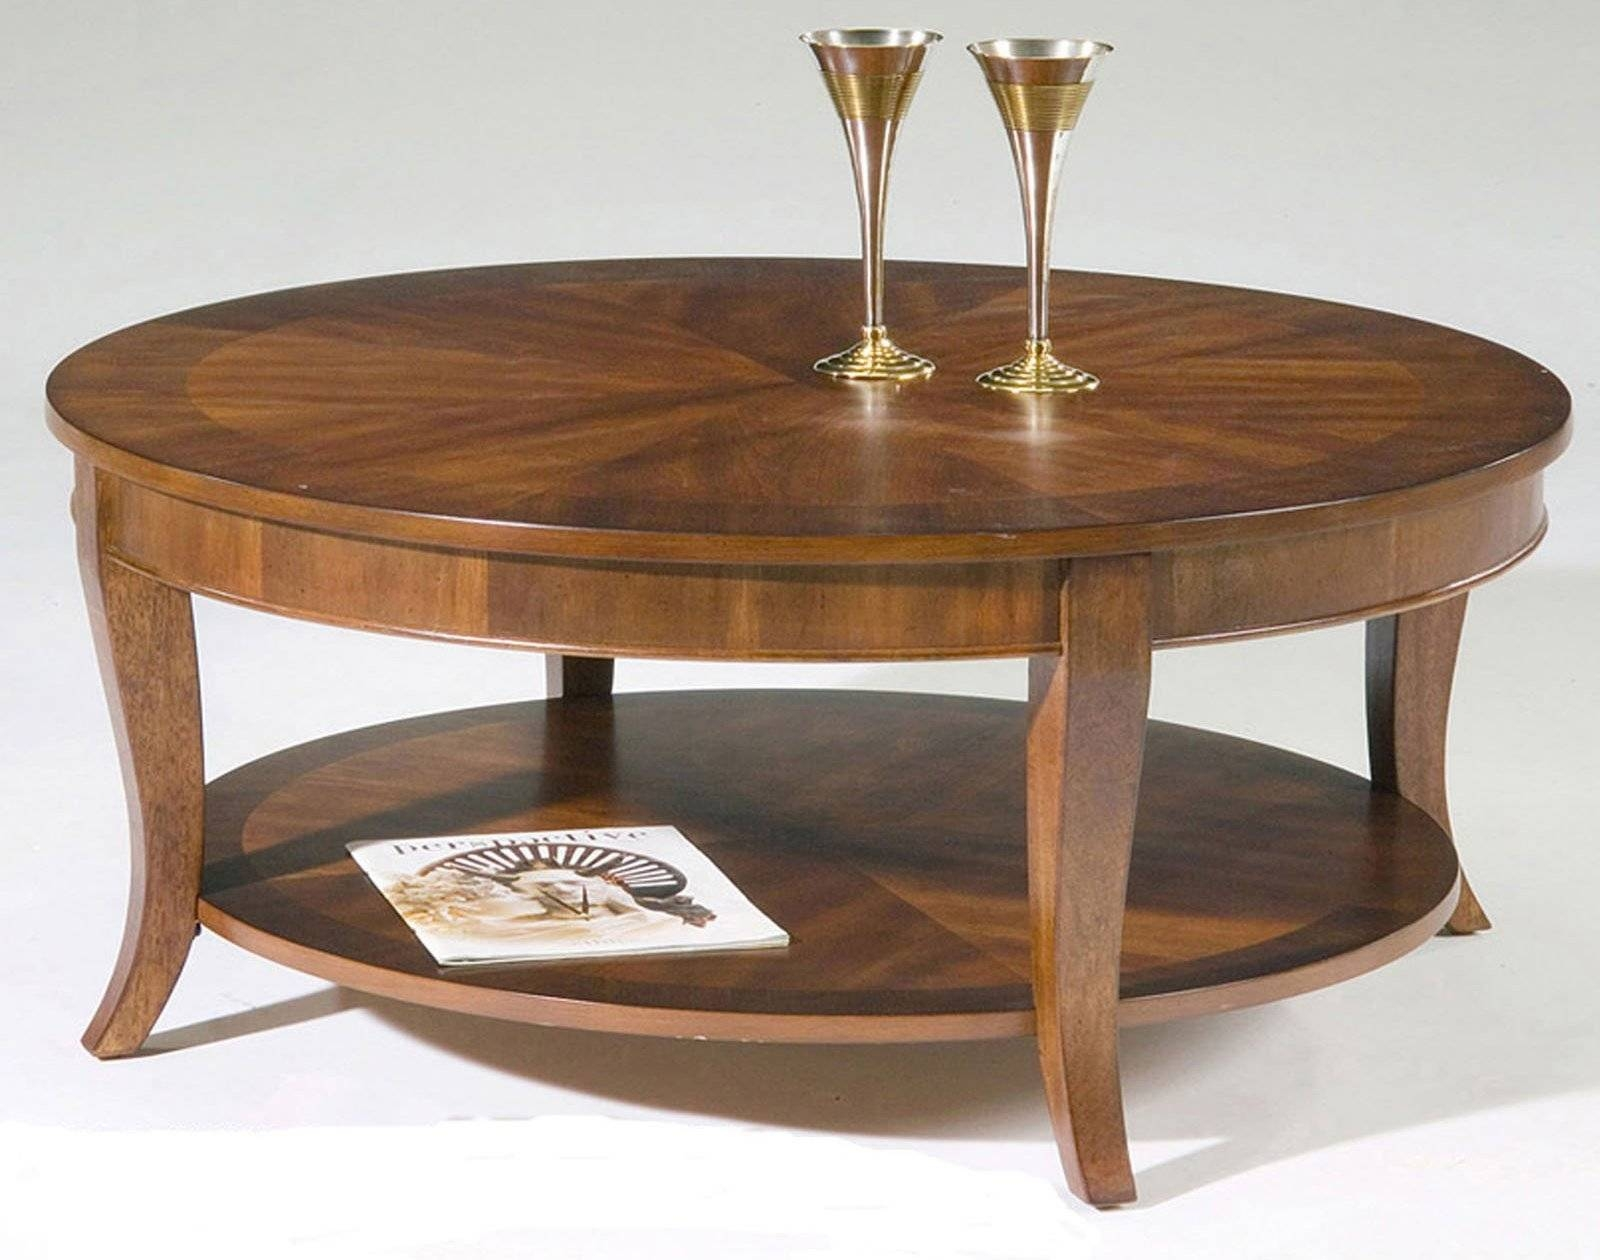 Coffee Table: Simple Round Coffee Table Designs Small Round Coffee Pertaining To Small Round Coffee Tables (View 7 of 30)